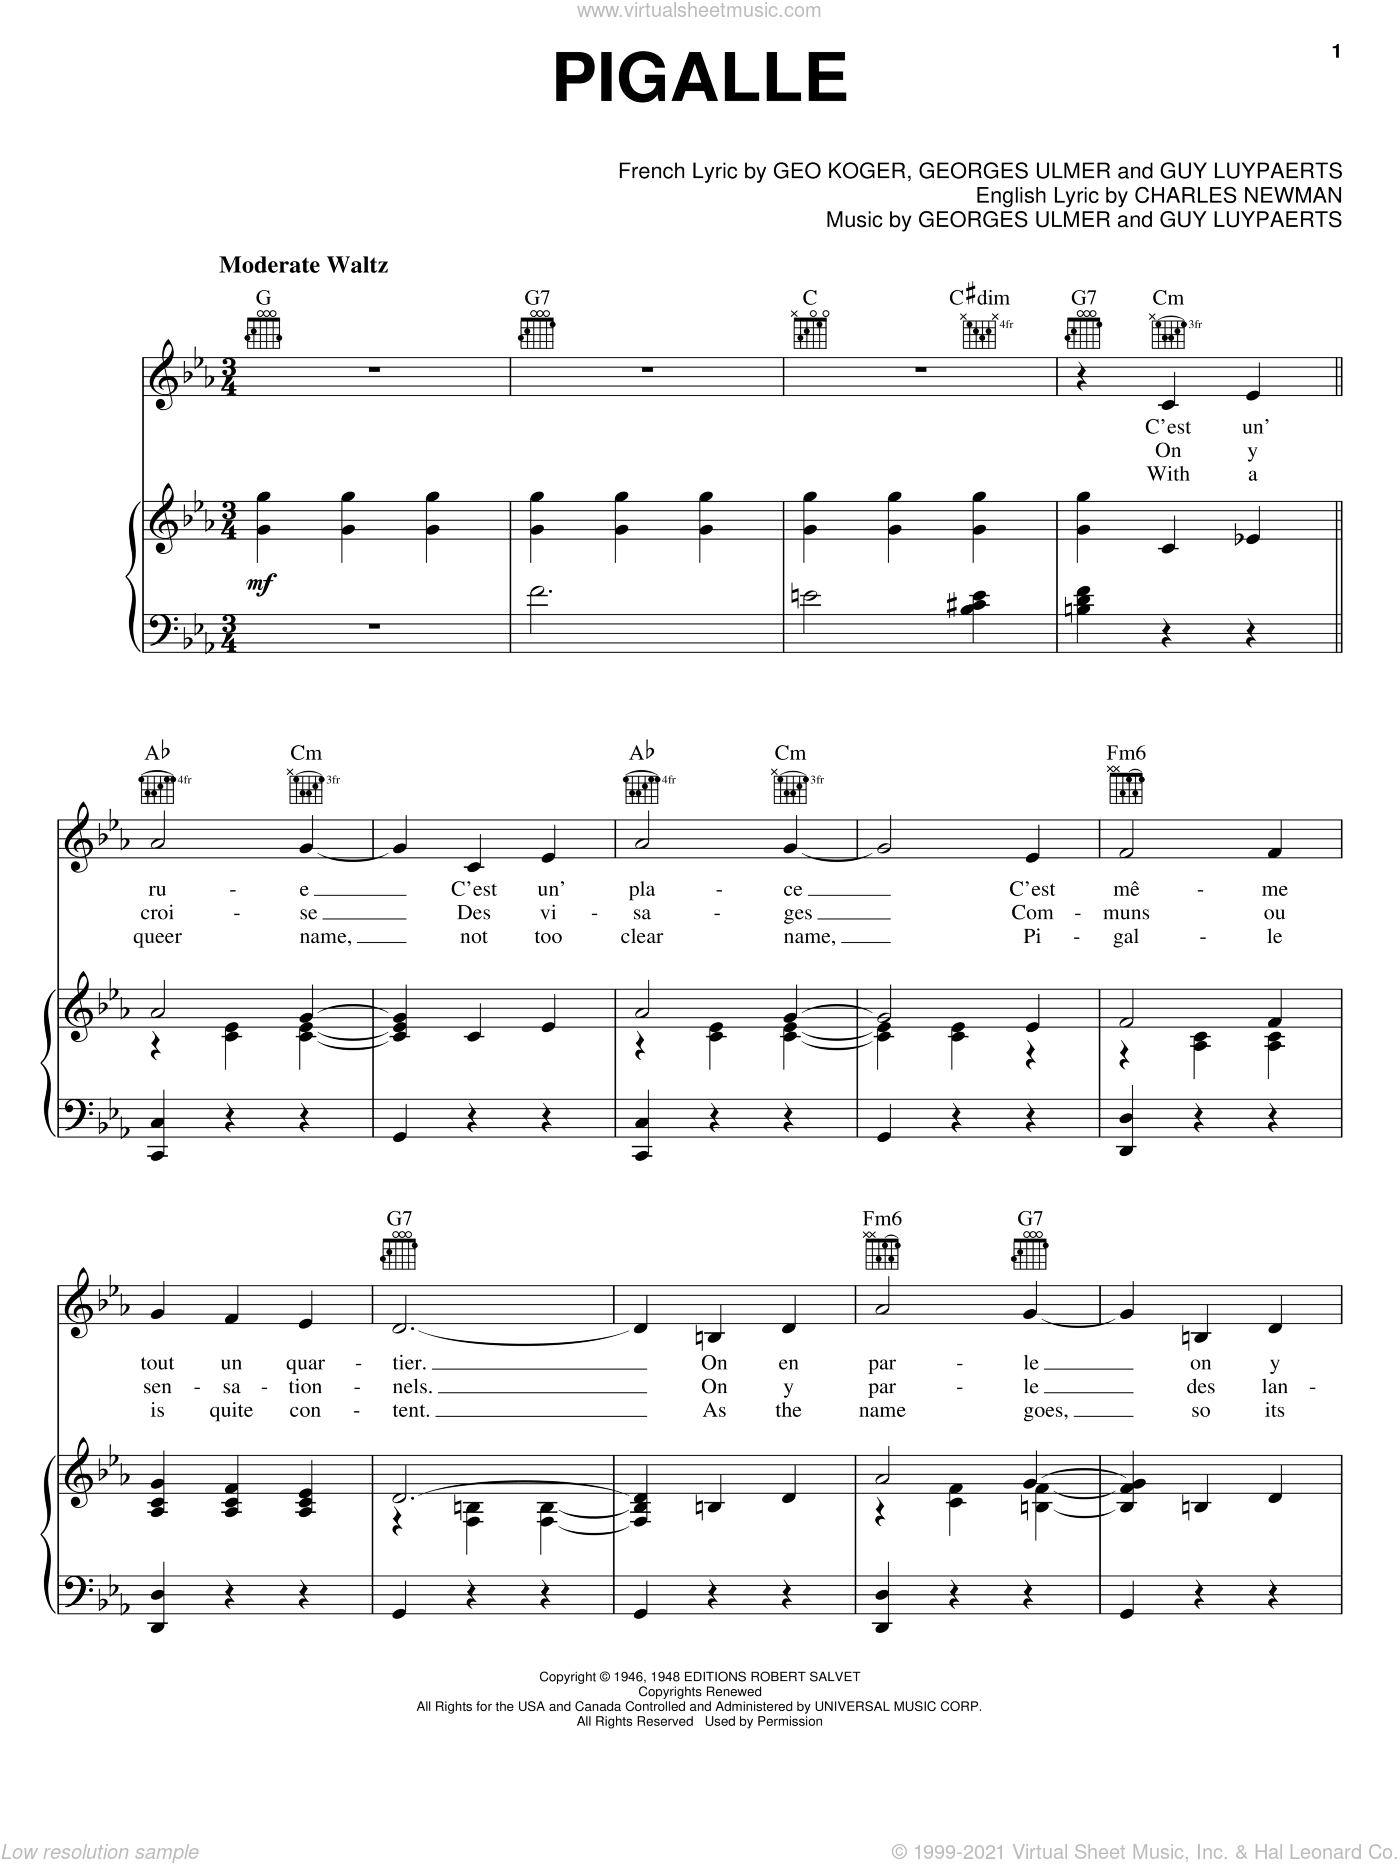 Pigalle sheet music for voice, piano or guitar by Guy Luypaerts